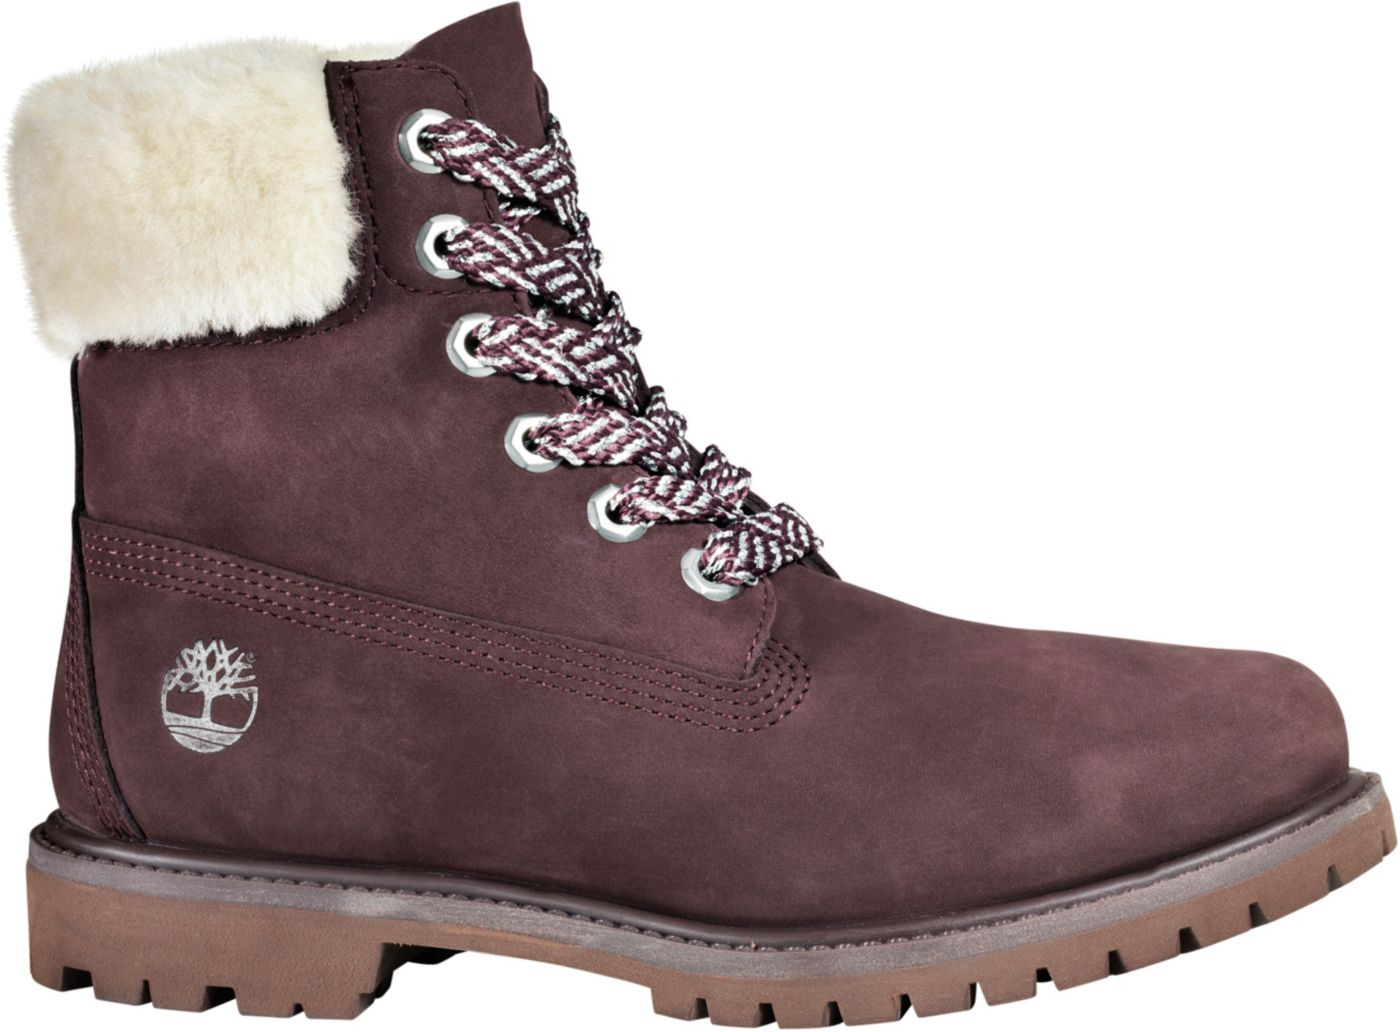 Timberland Women's 6'' Shearling 200g Waterproof Casual Boots